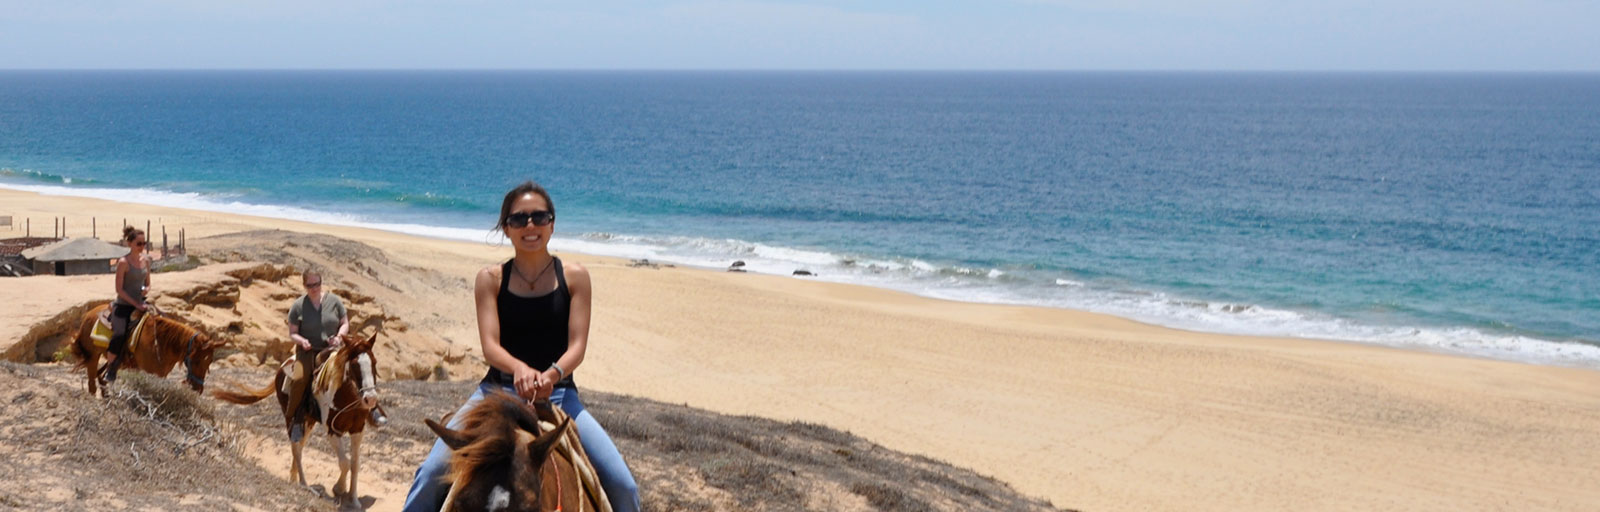 Horseback Riding & Yoga Retreat in Mexico: Ocean View